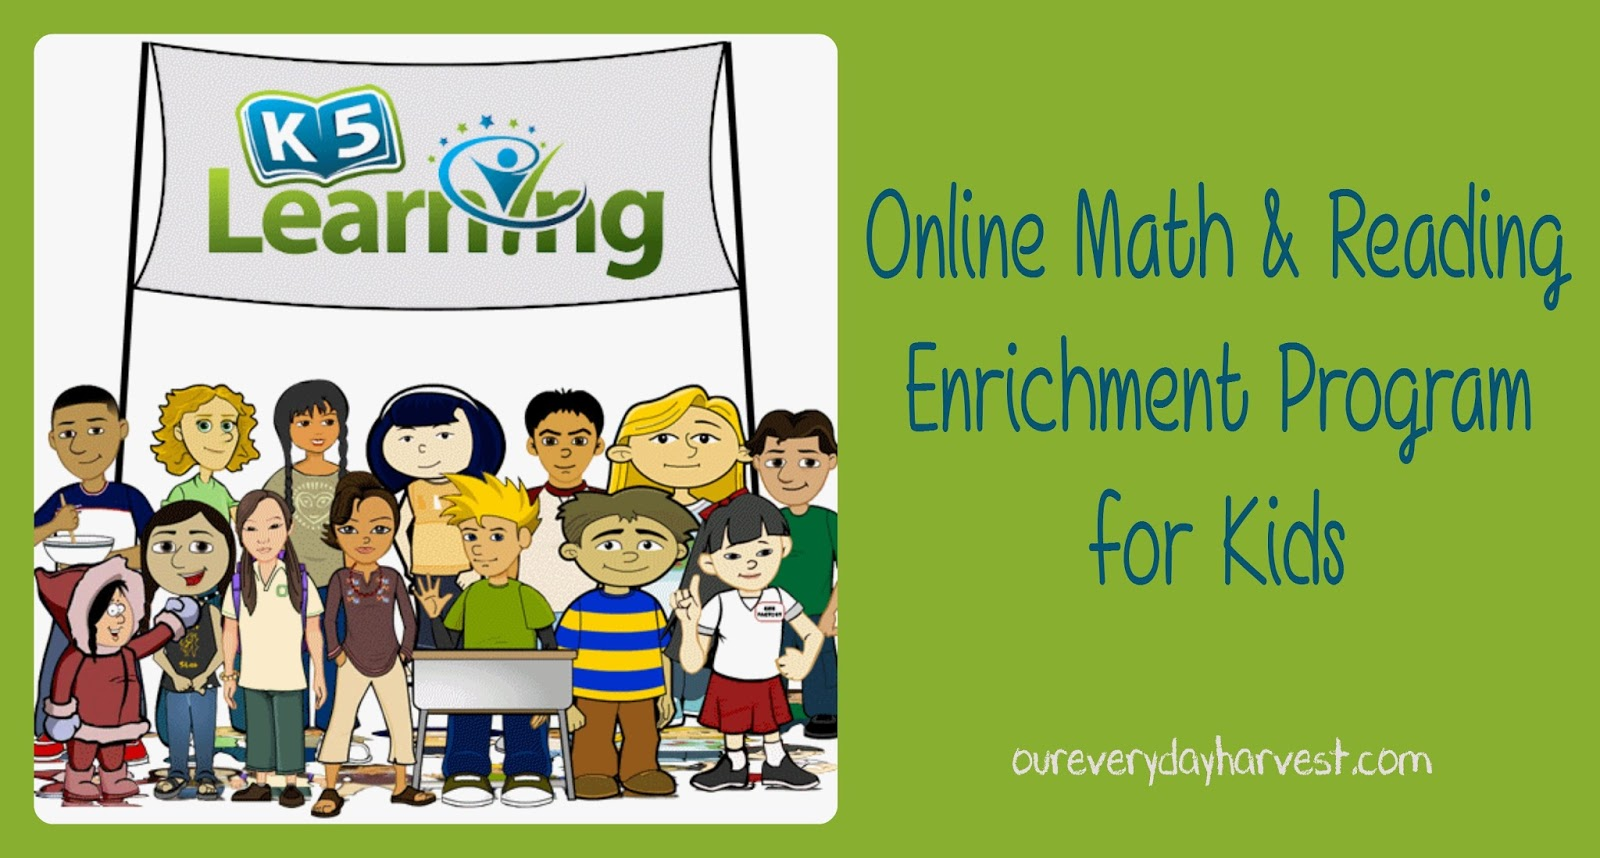 Worksheet Online Math And Reading Programs online math and reading enrichment program for kids k5 learning we often switch through a variety of different subjects in our day to preschool lessons but anything pertaining or la